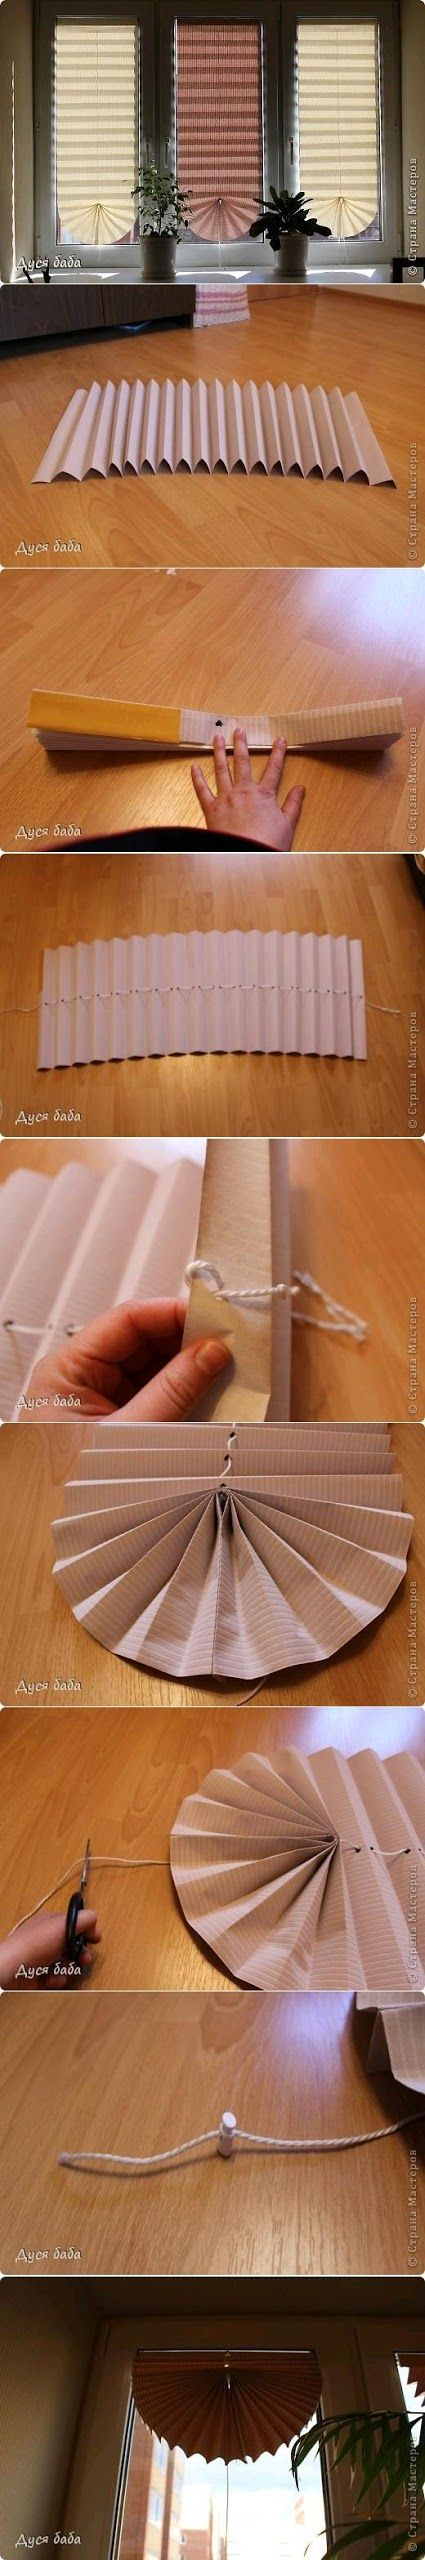 How to Make a Curtain by papers Tutorial